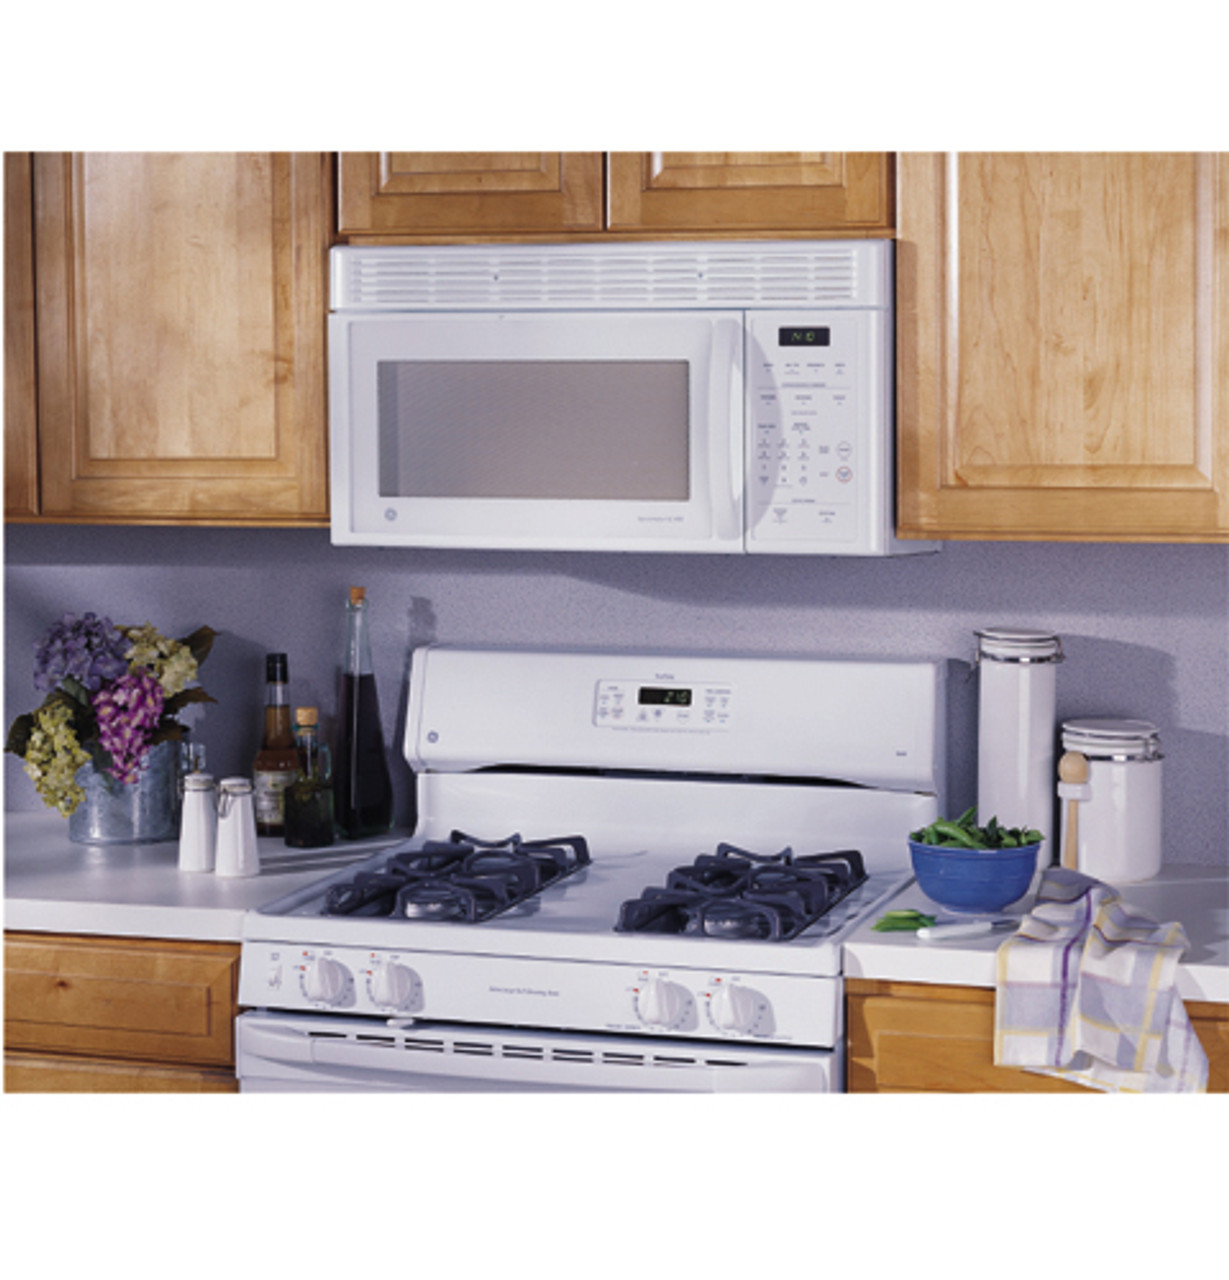 ge spacemaker xl over the range microwave oven jvm1410bc